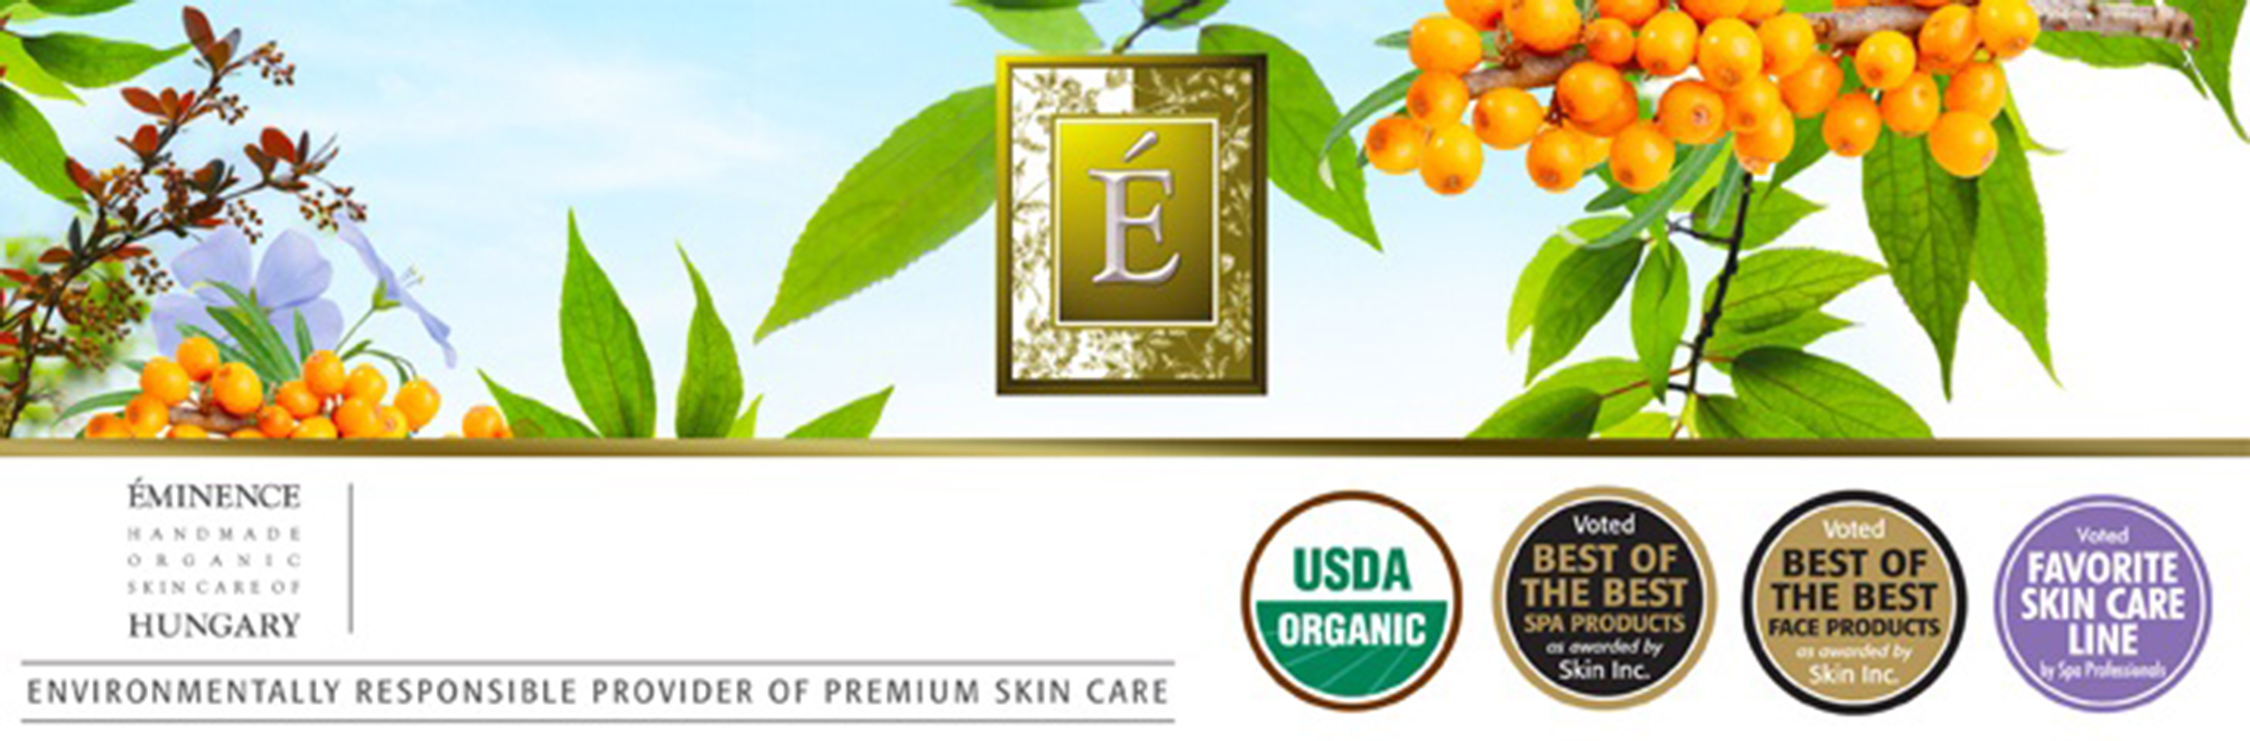 buy-eminence-skin-care-products-at-juice-salon